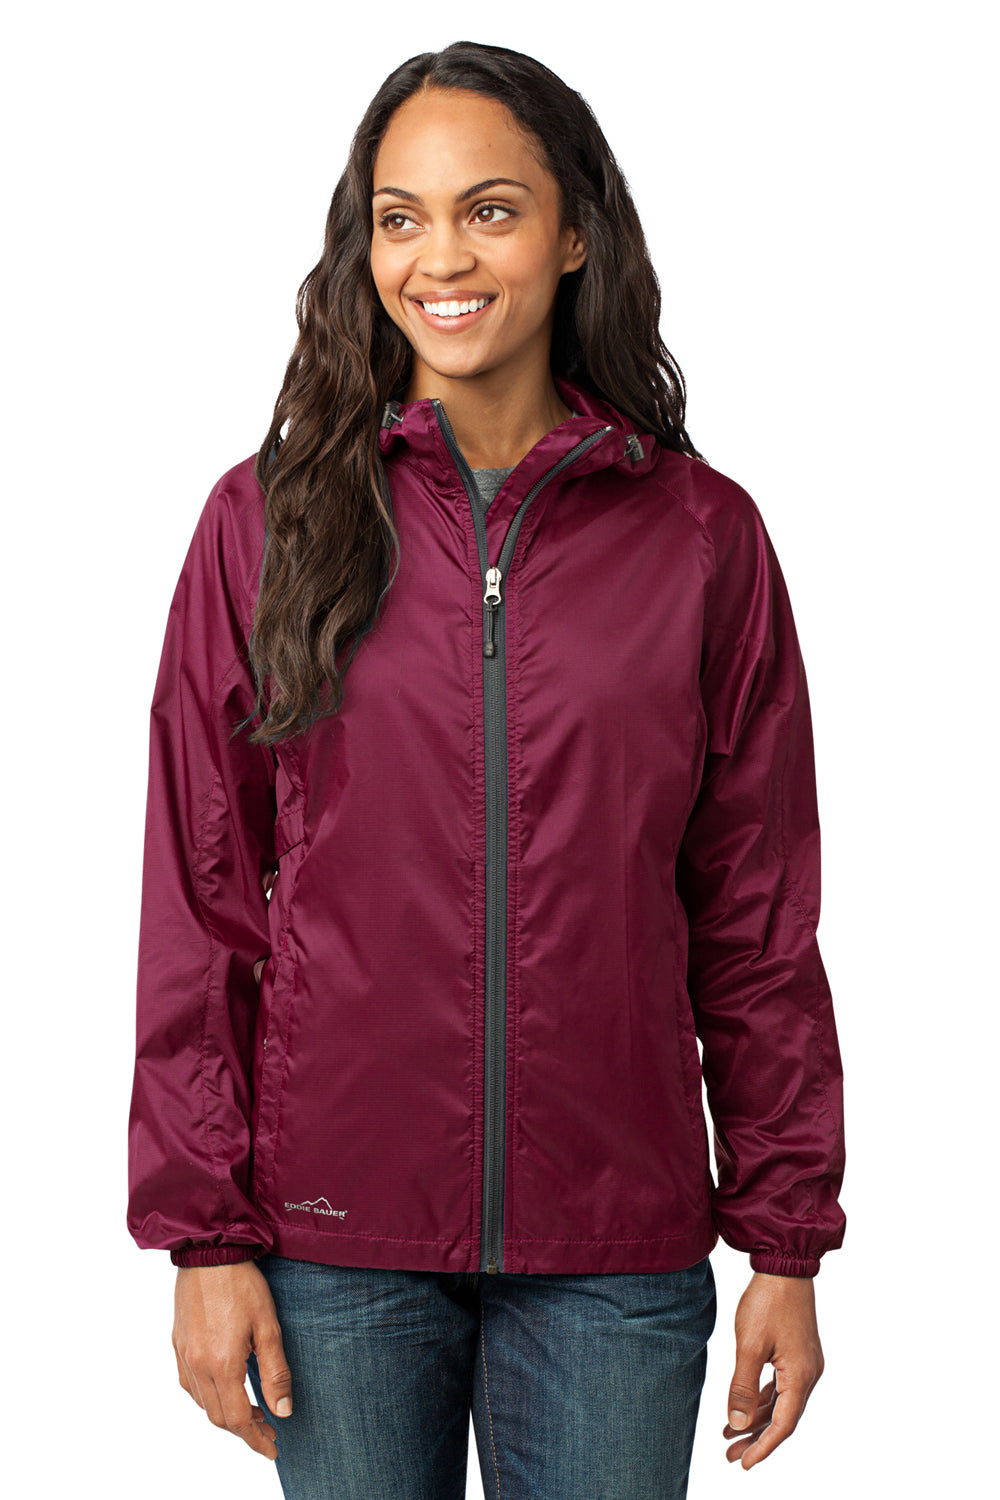 Eddie Bauer EB501 Womens Packable Wind Resistant Full Zip Hooded Wind Jacket Black Cherry Red Front